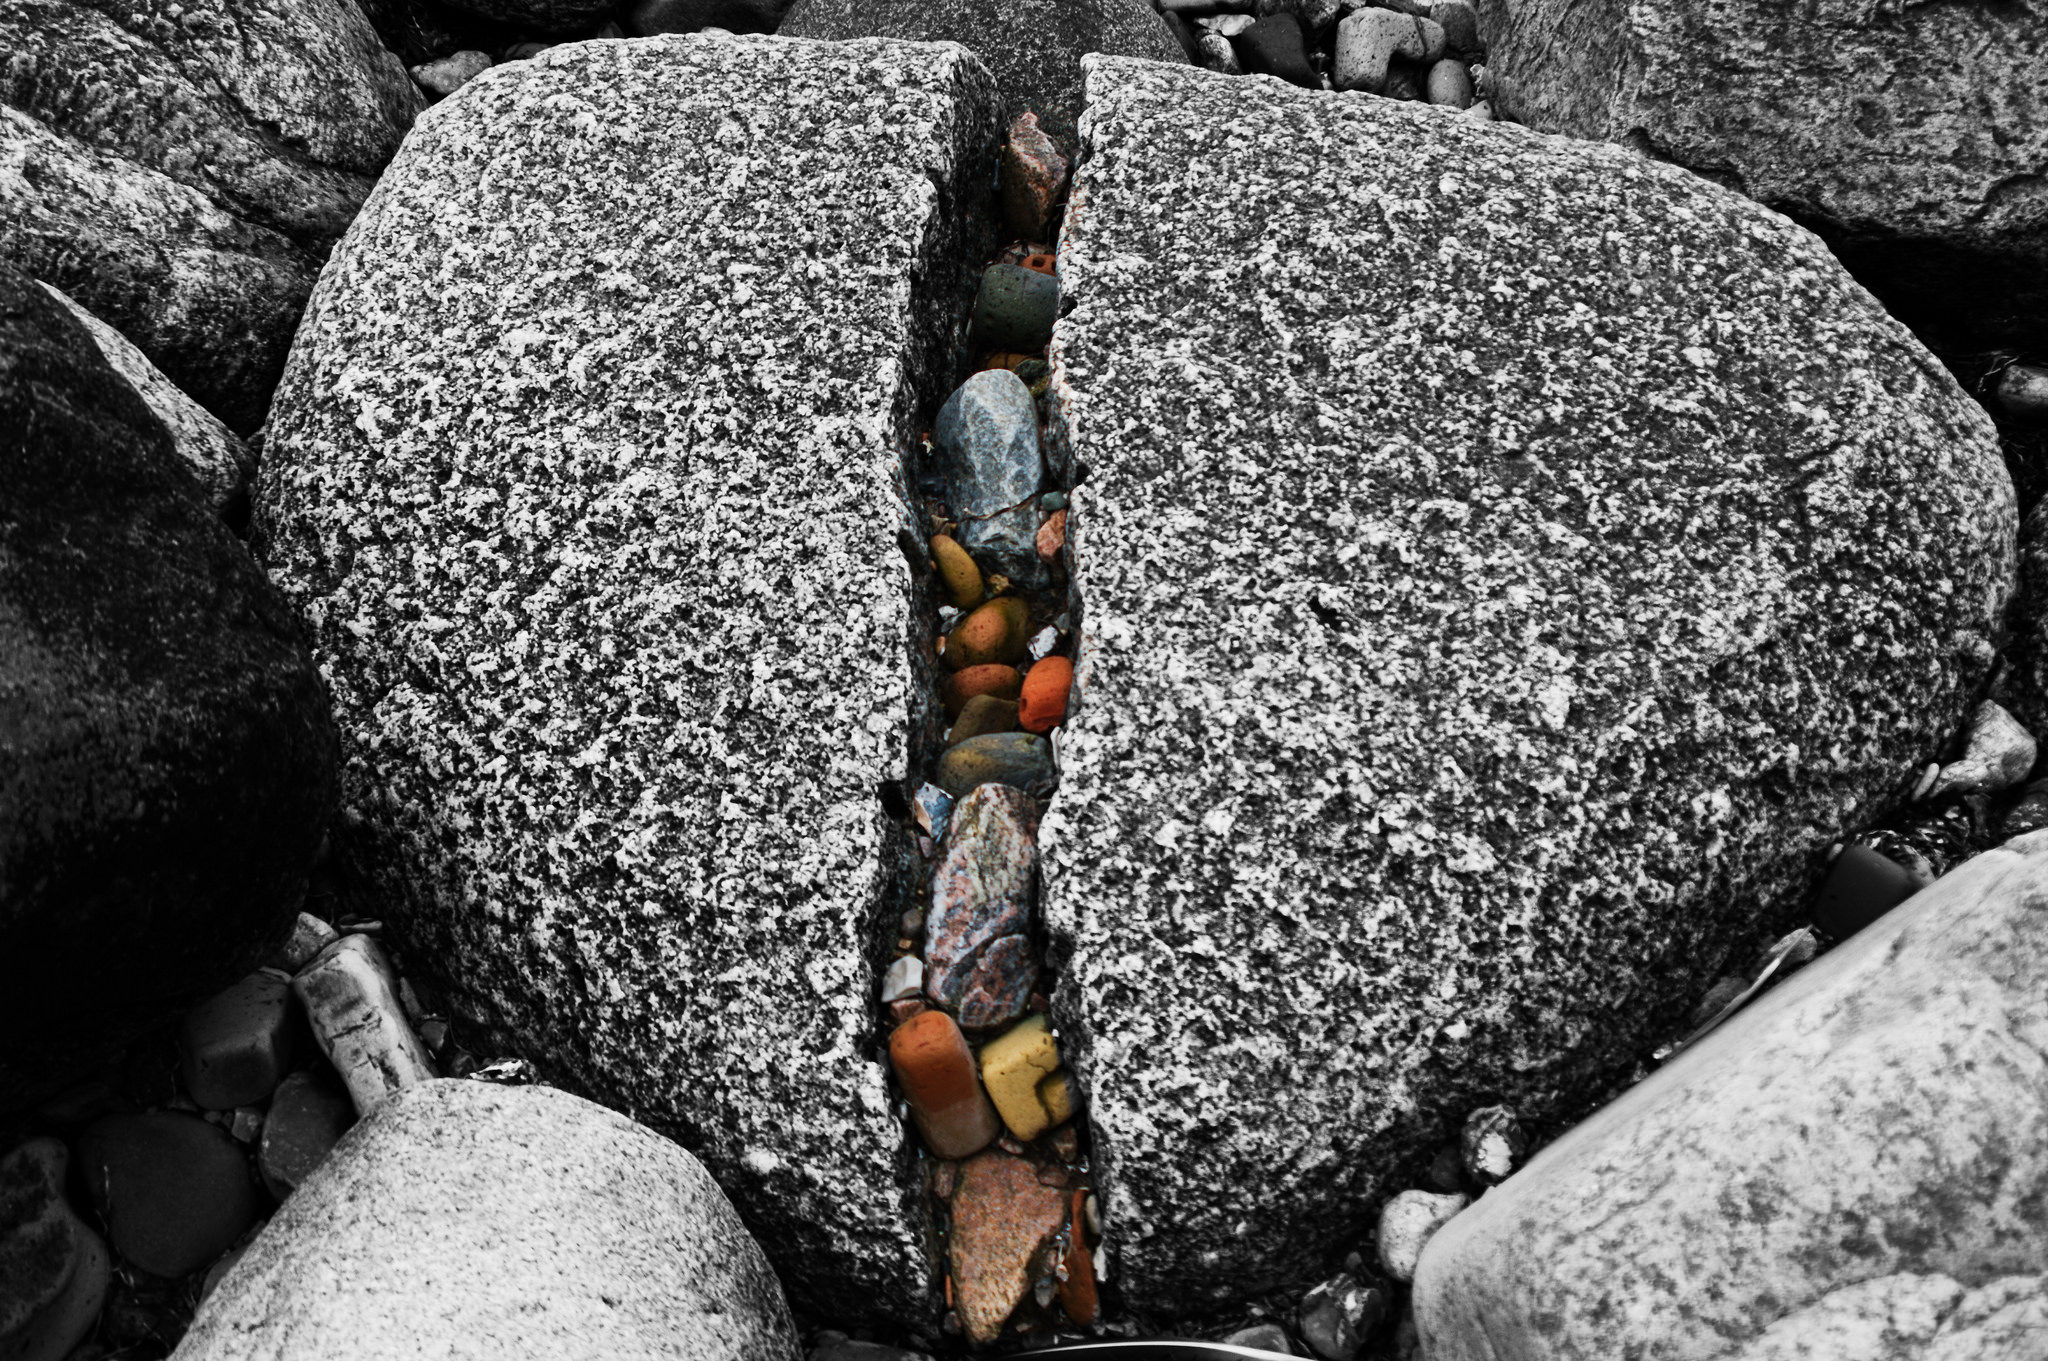 A large gray rock is cracked down the middle, where many small colorful stones are caught